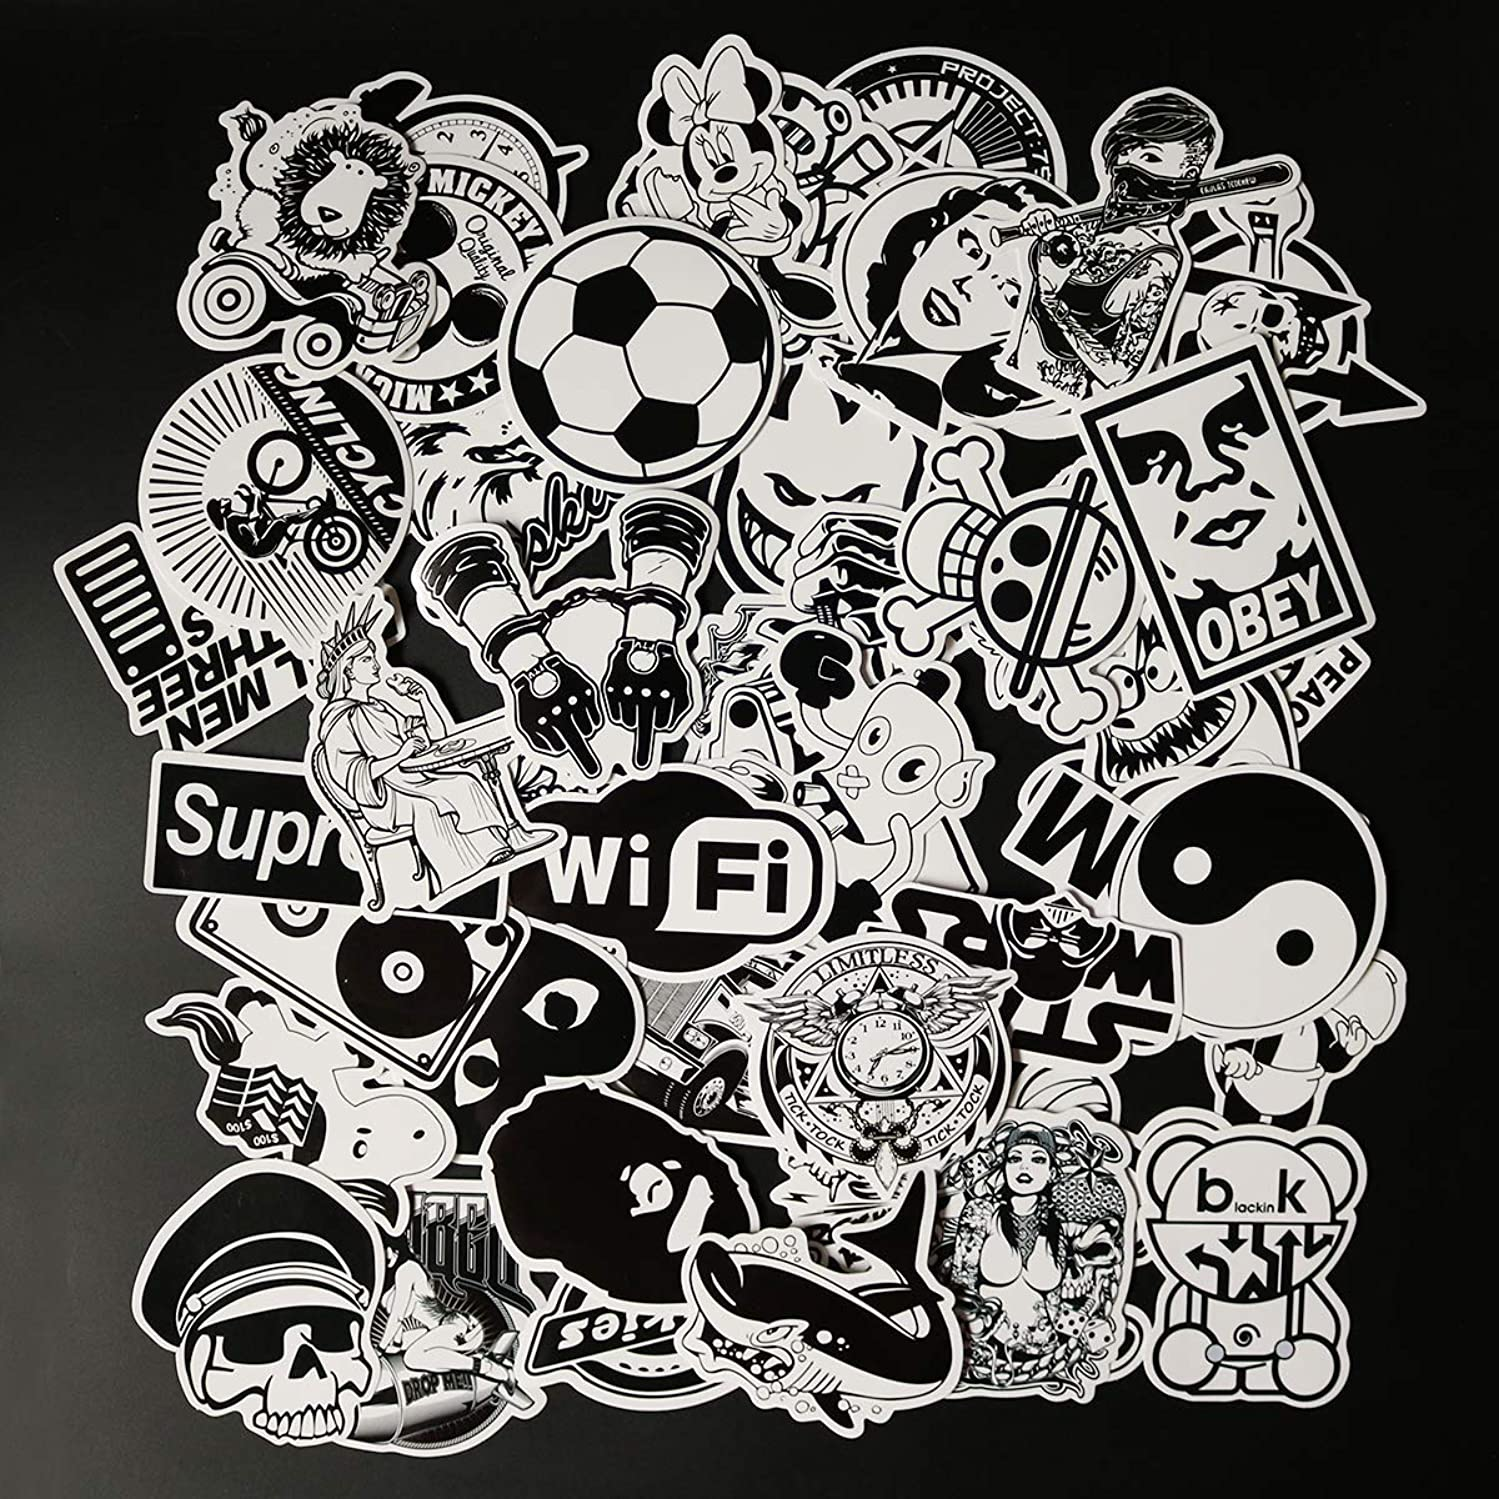 Cute Cartoon Black and White Laptop Stickers Car Skateboard Motorcycle Bicycle Luggage Guitar Bike Decal 50pcs Pack